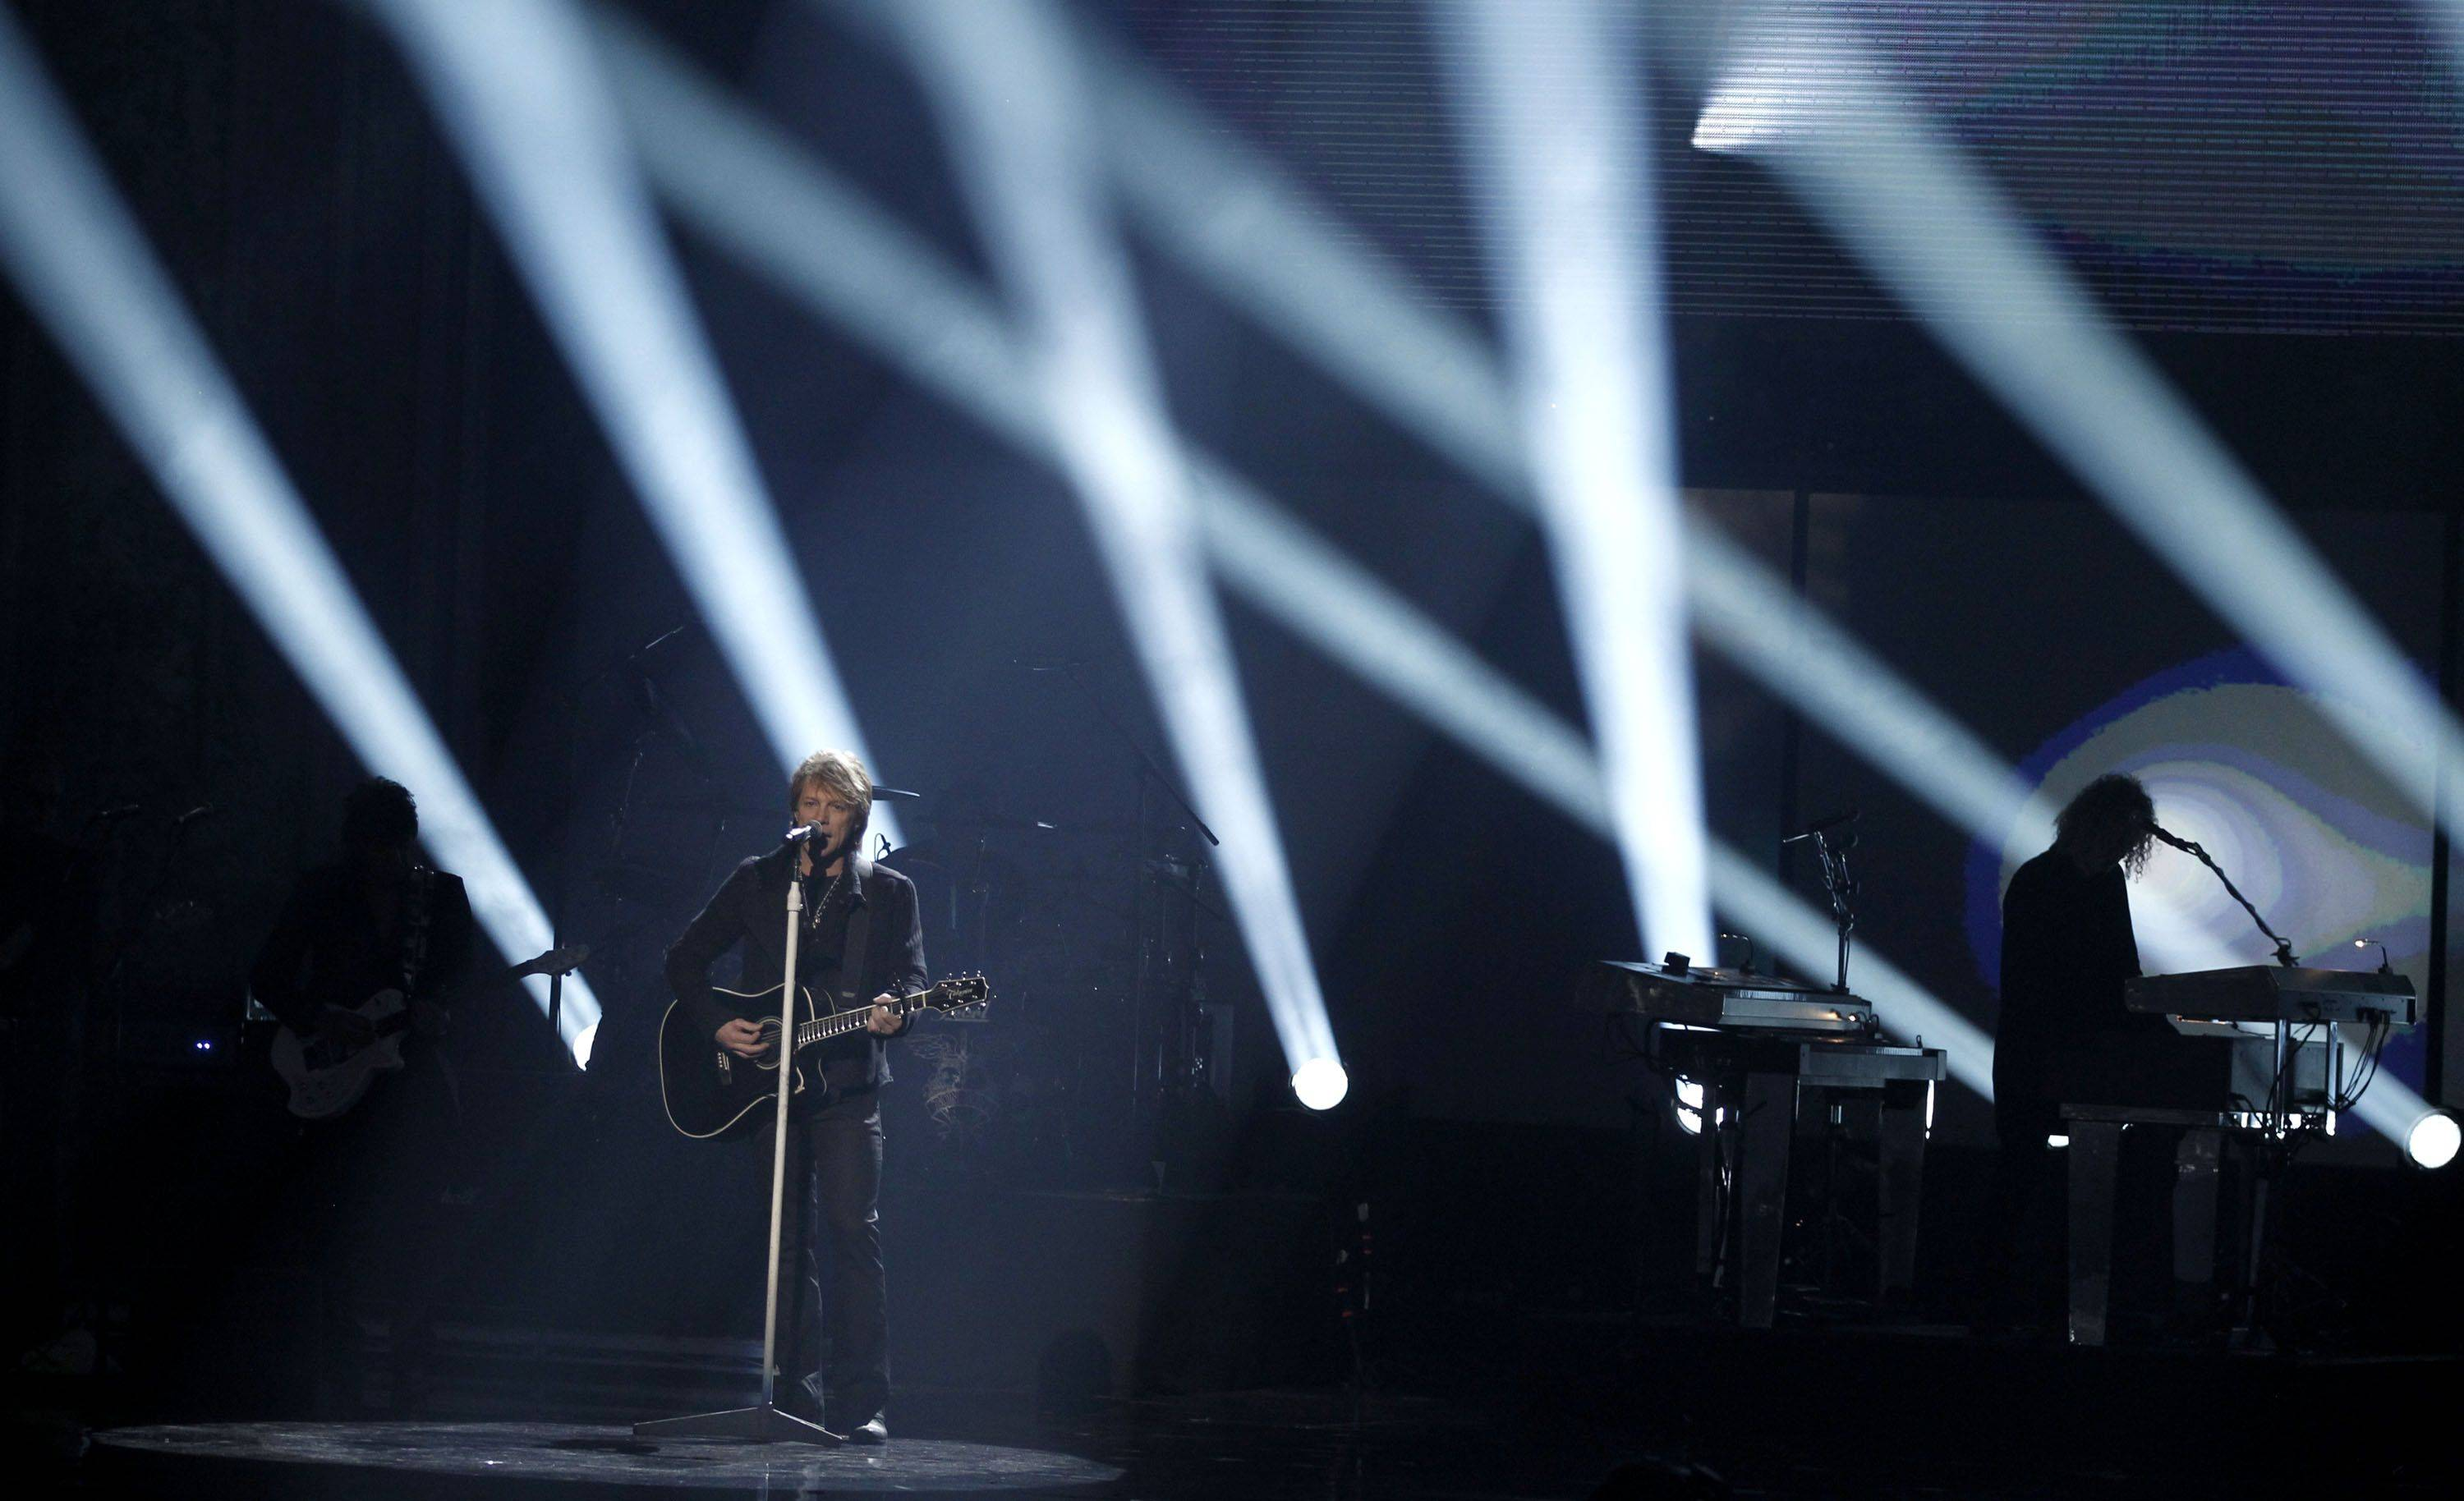 Bon Jovi performs at the 38th Annual American Music Awards on Sunday, Nov. 21, 2010 in Los Angeles.